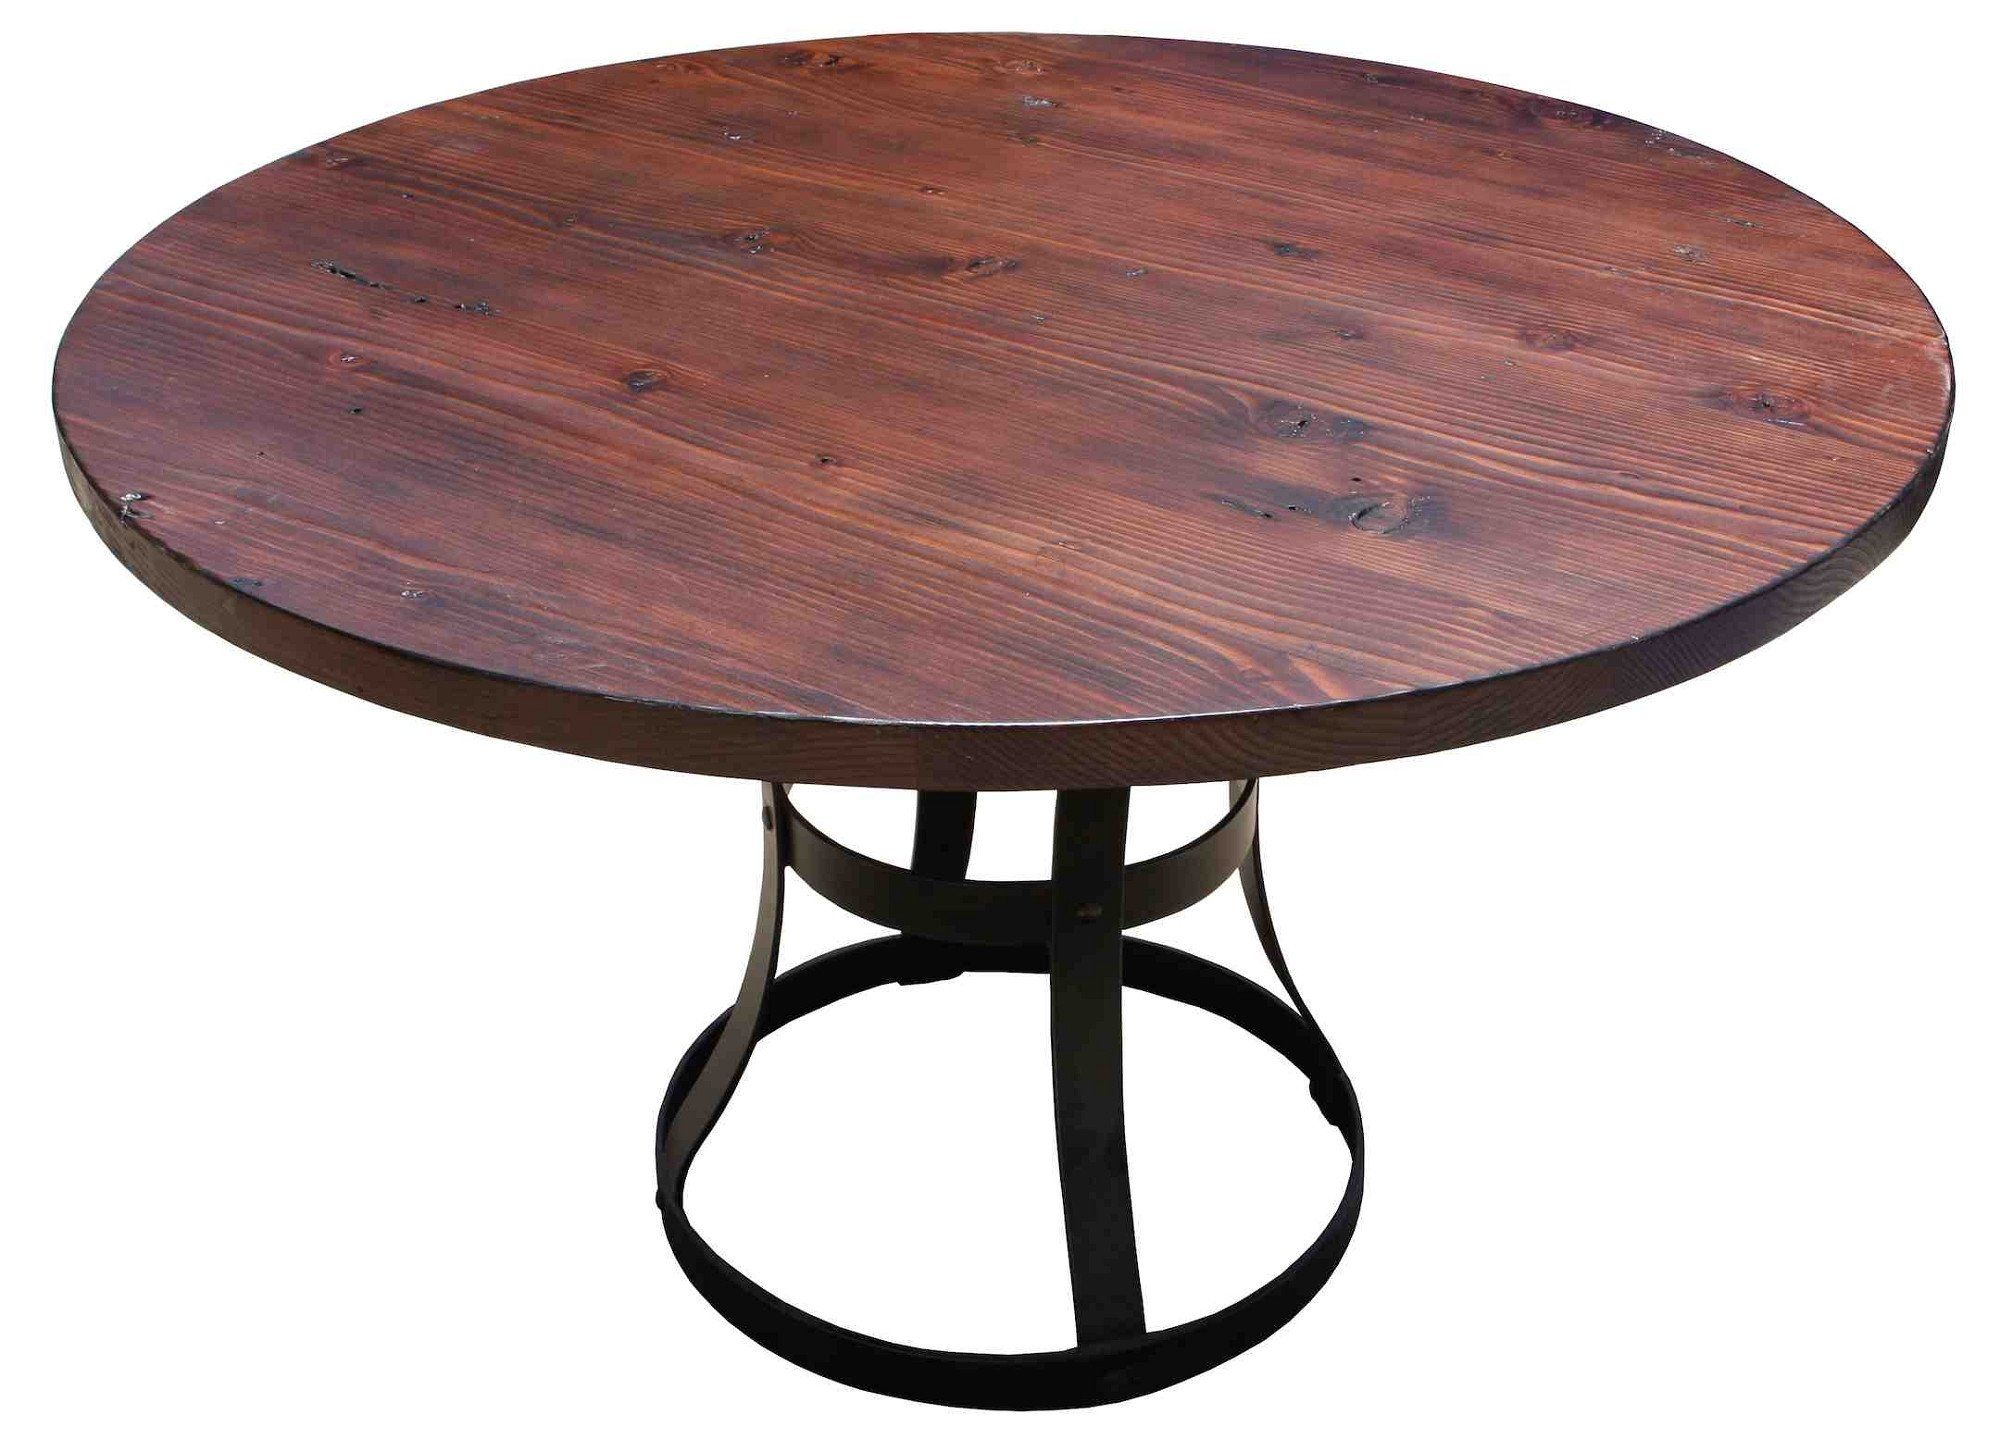 Detroit Dining Table In Reclaimed Wood, 72 Inch Round Dining Table Reclaimed Wood